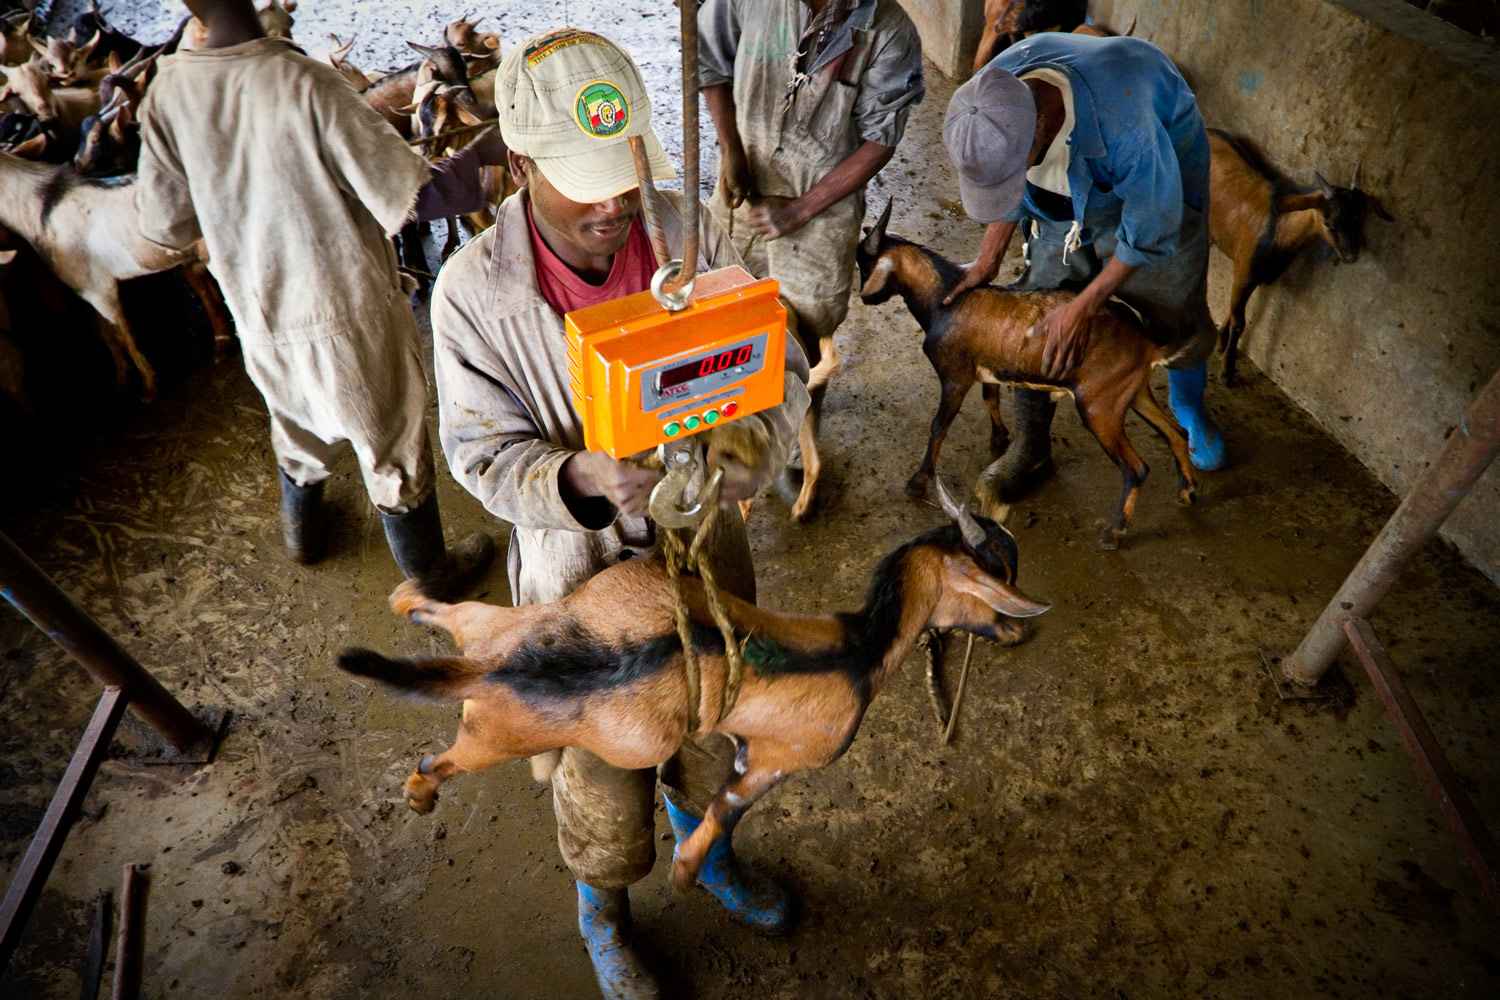 ethiopia-goats-weigh-slaughterhouse.jpg